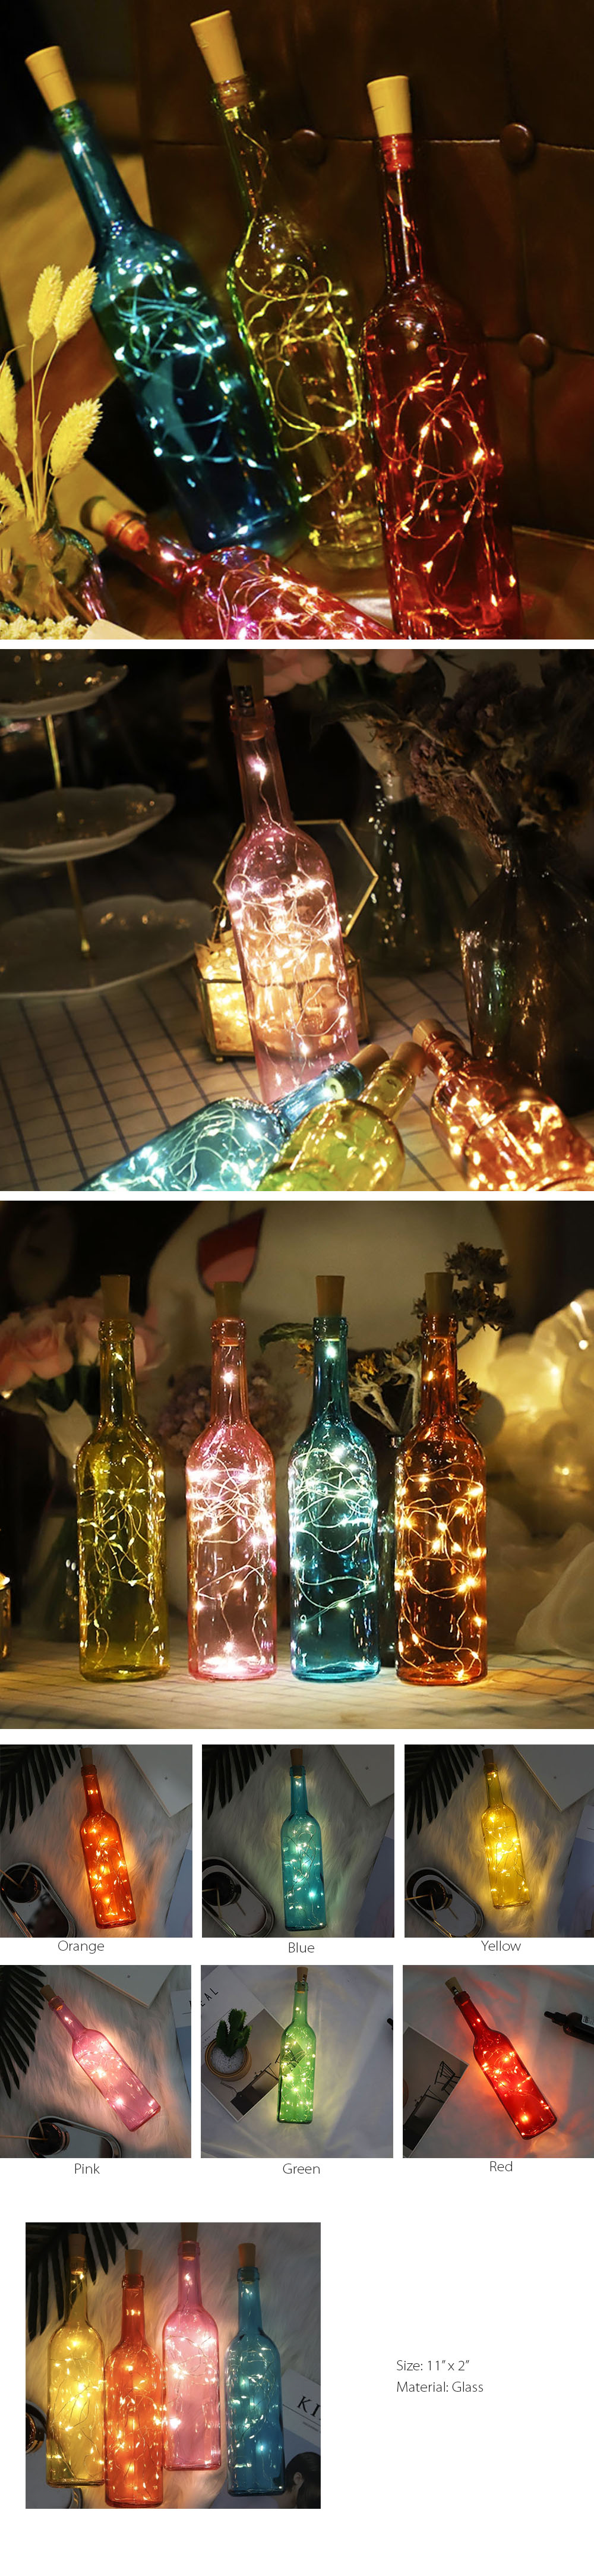 LED Bottle Light Colorful Holiday Decor